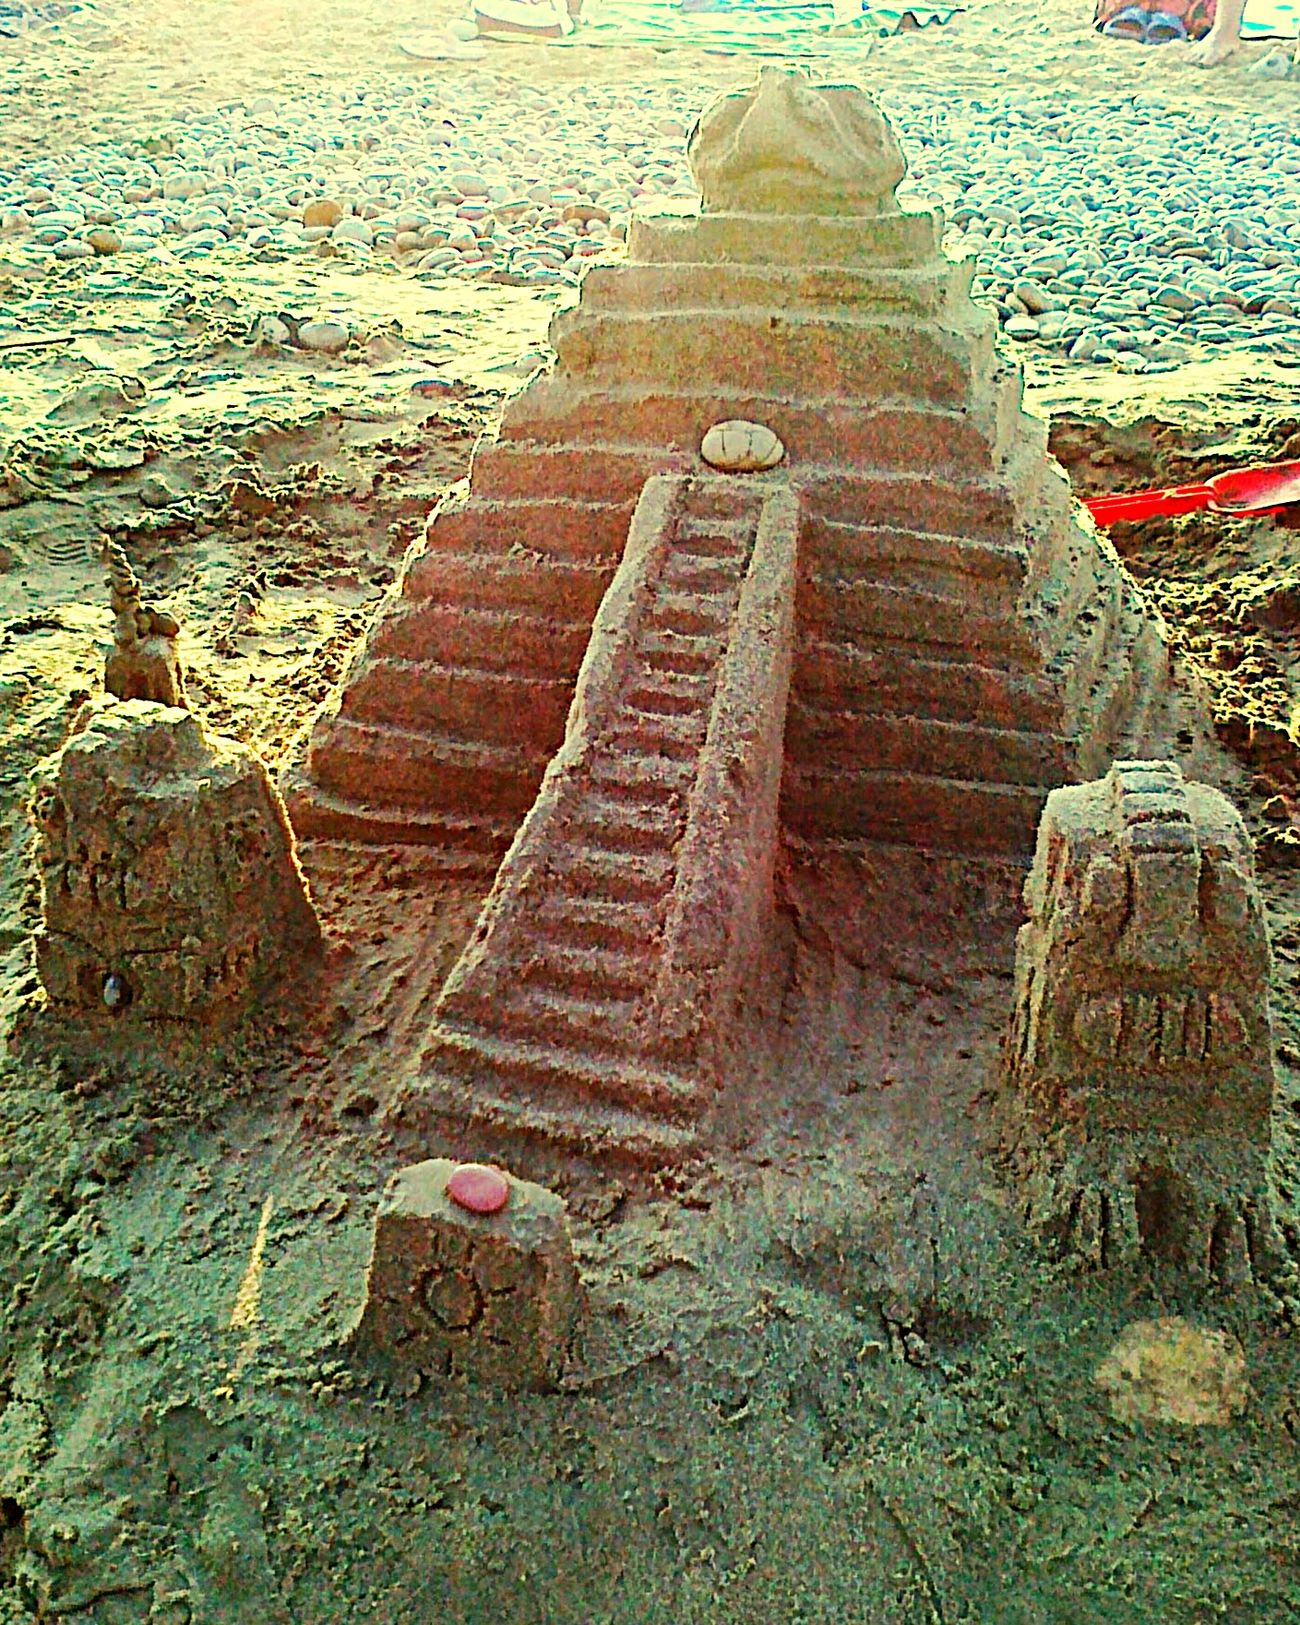 Holiday POV Sandcastles Aztec Inspired On The Beach